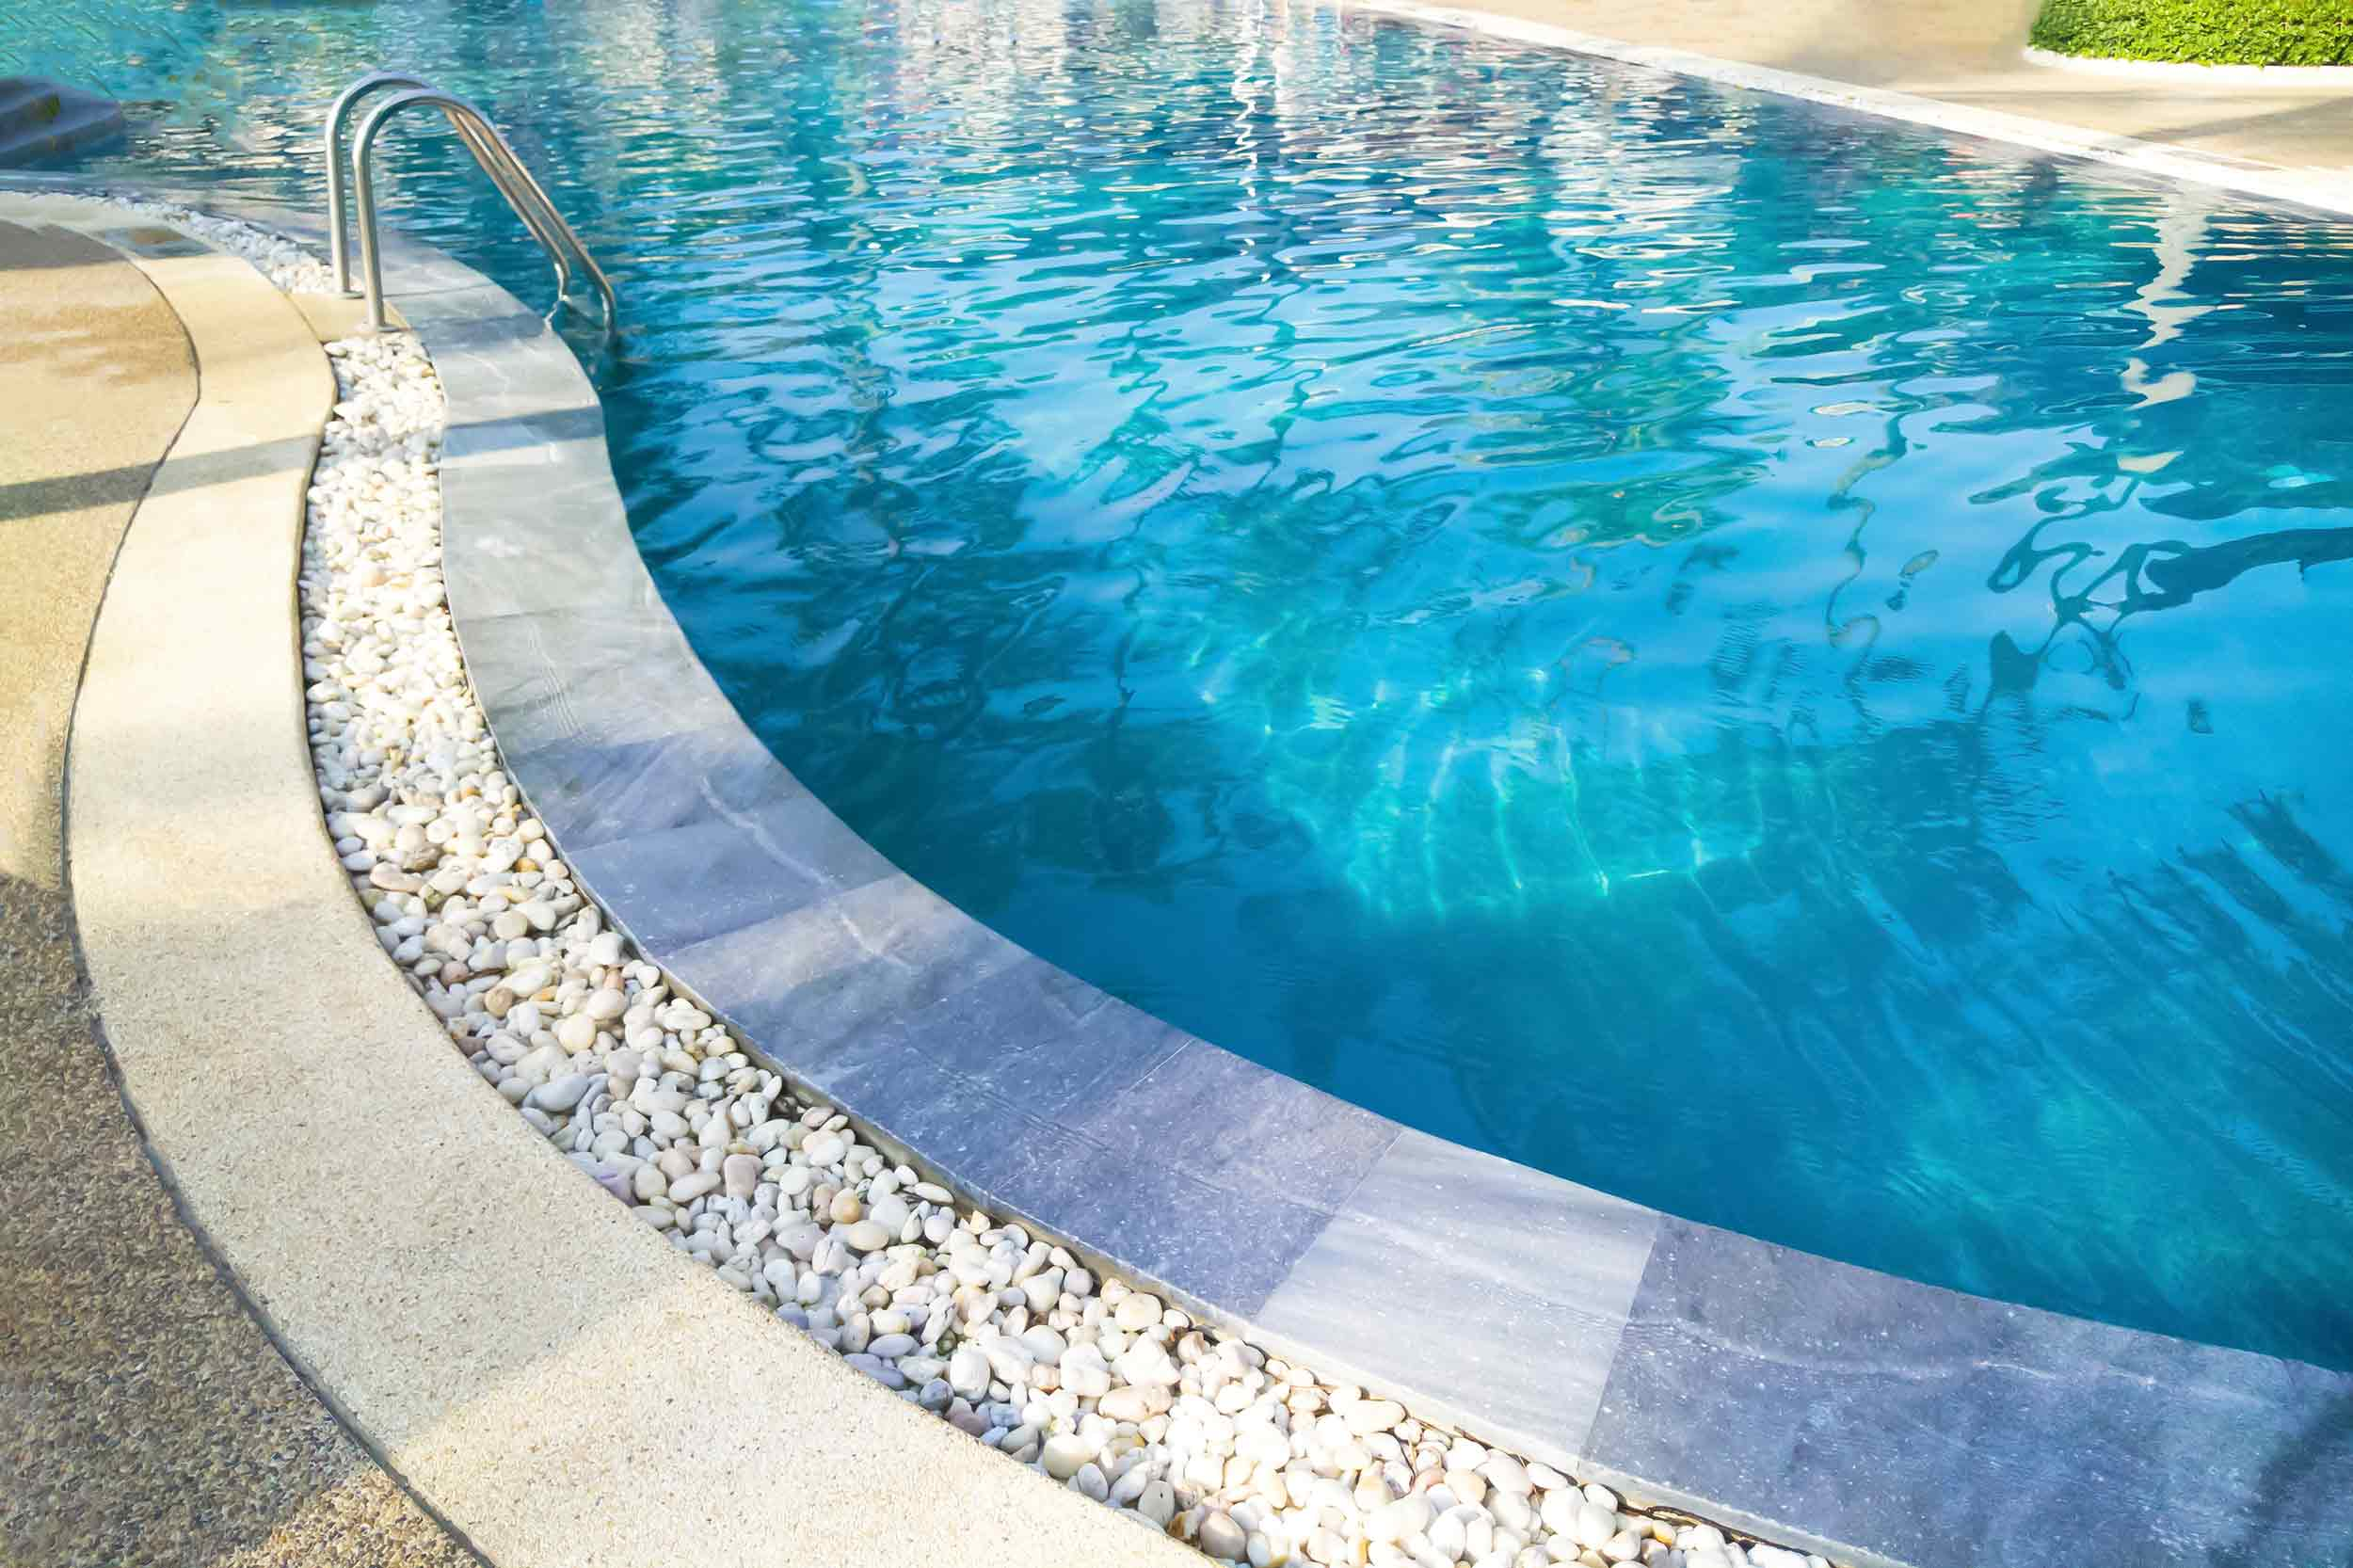 Pool Decking - Paver decking with landscaping rock.